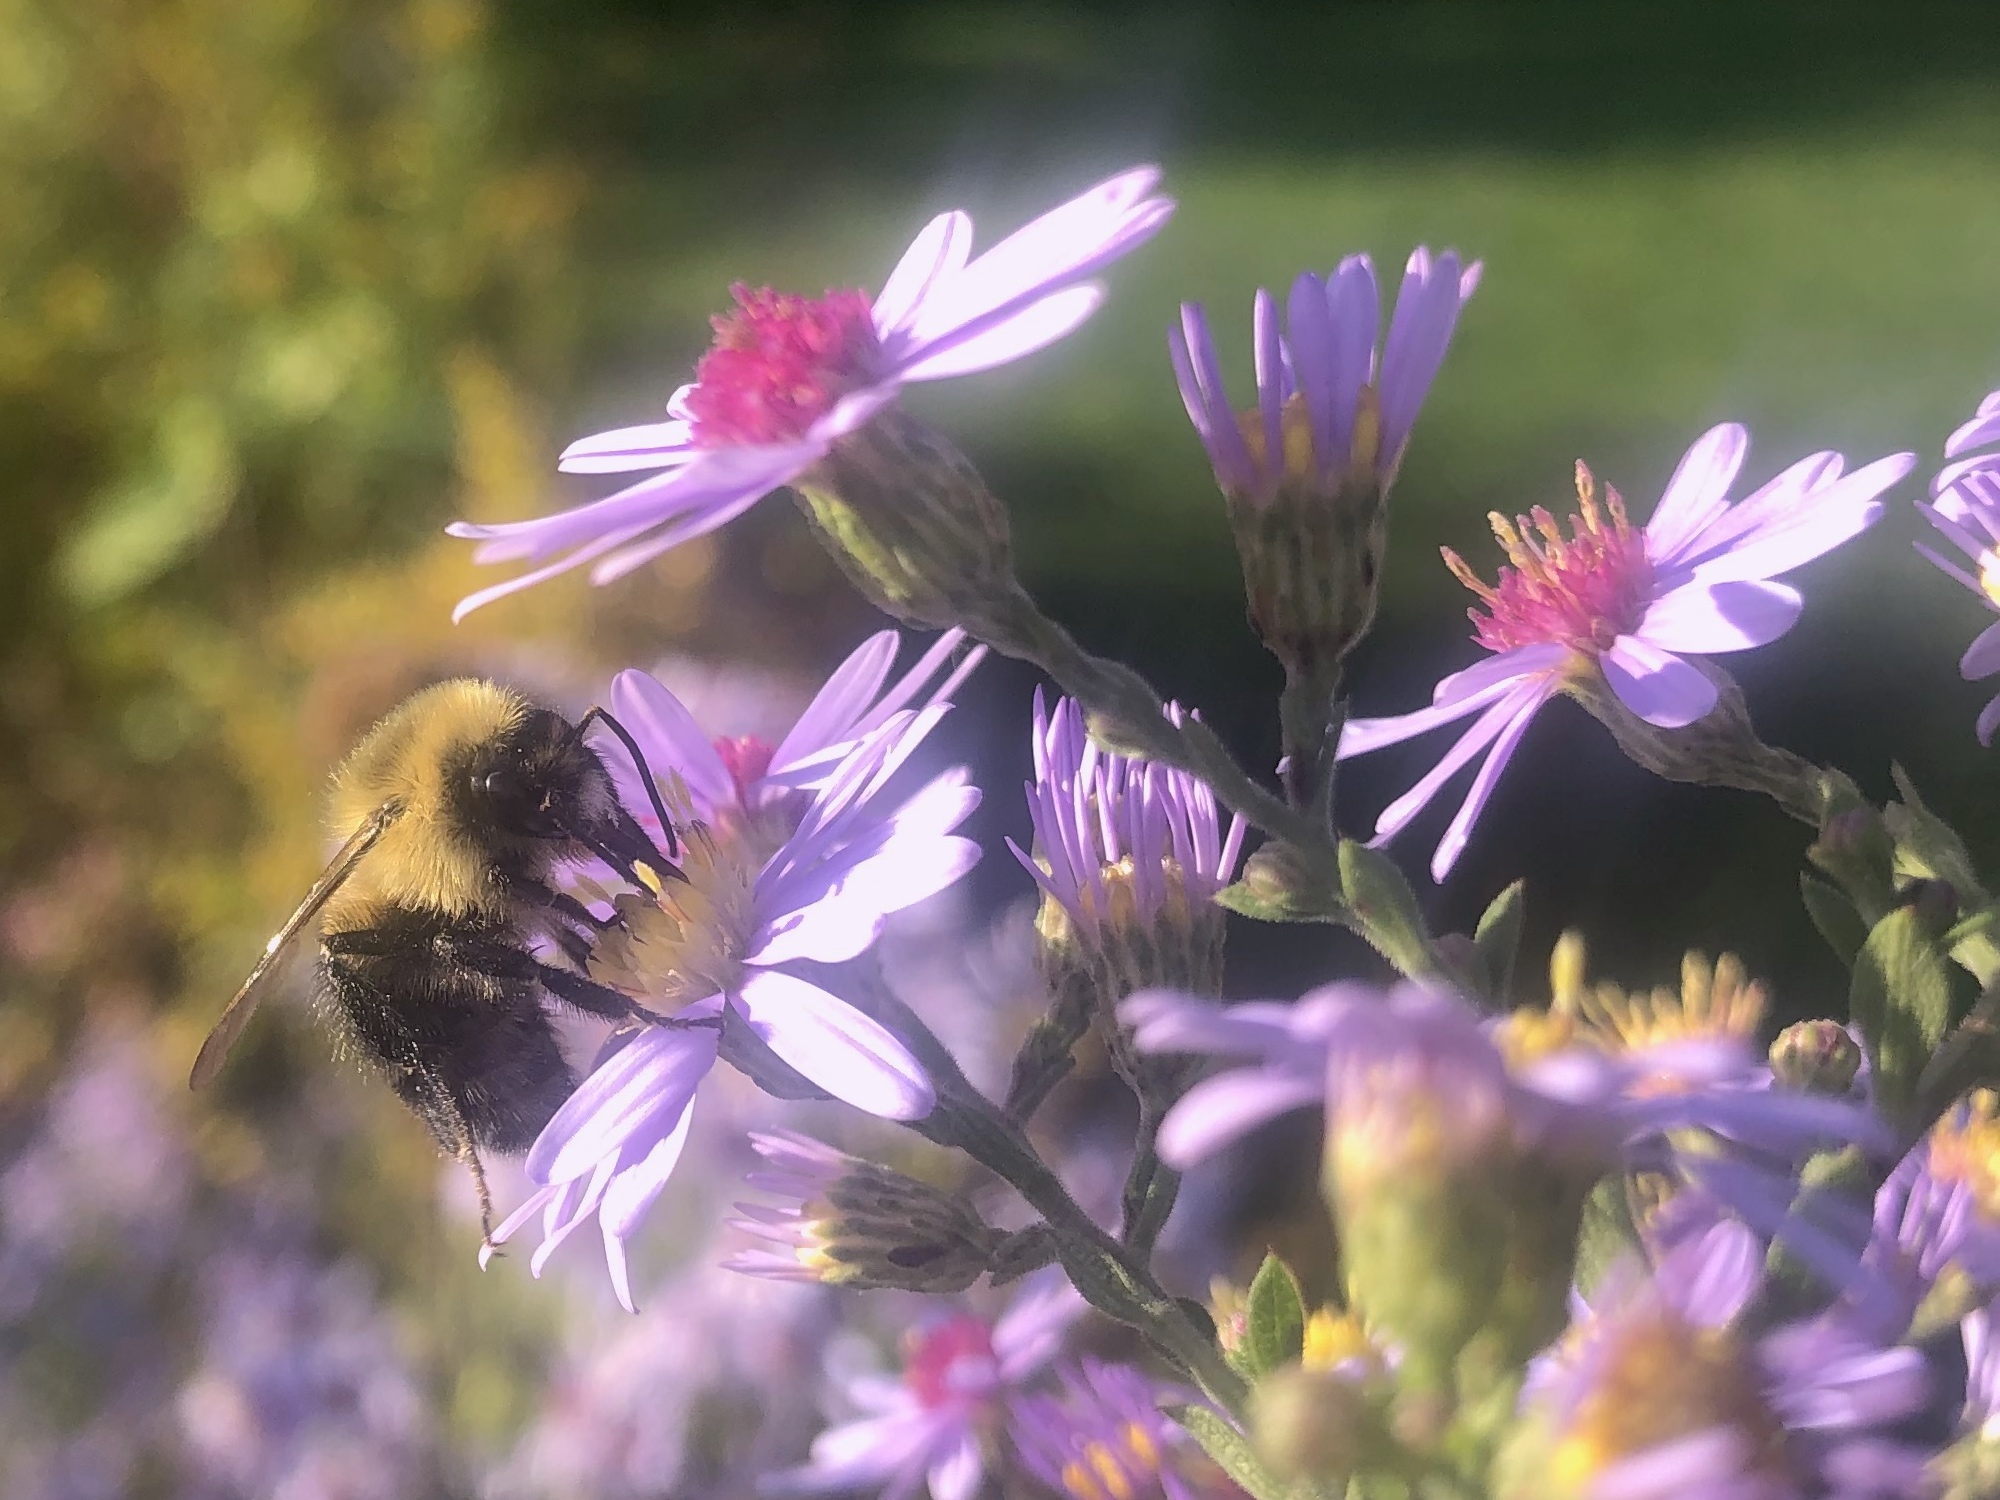 Bumblebee on Aster on September 30, 2020.